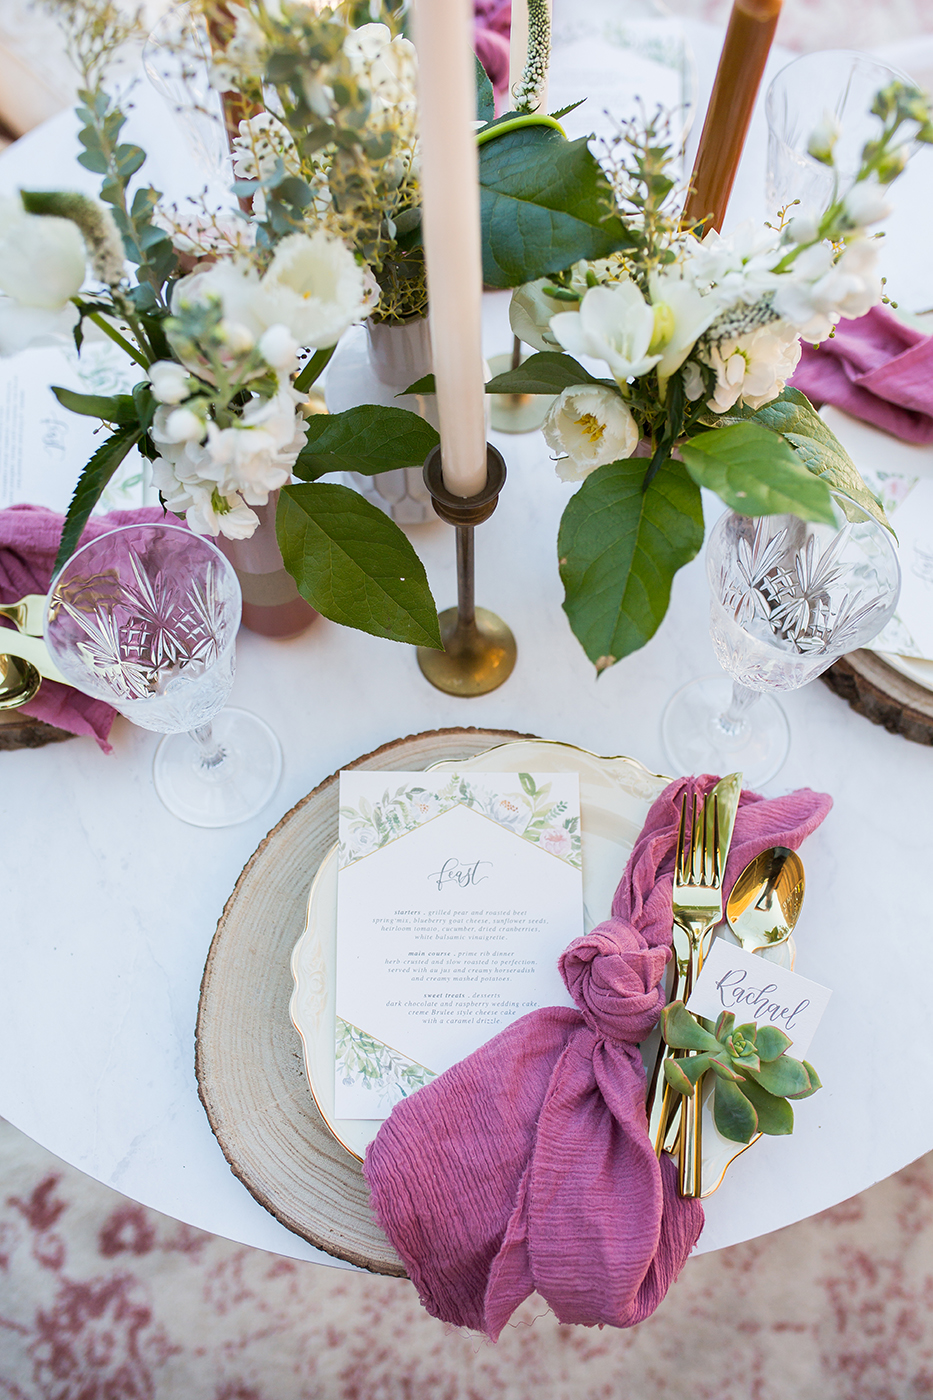 CarstenTicePhotography_Lot8-Boho-Wedding-Reception-Menu-and-Placesettings-with-Succulent-Placecard-by-Sam-Allen-Creates